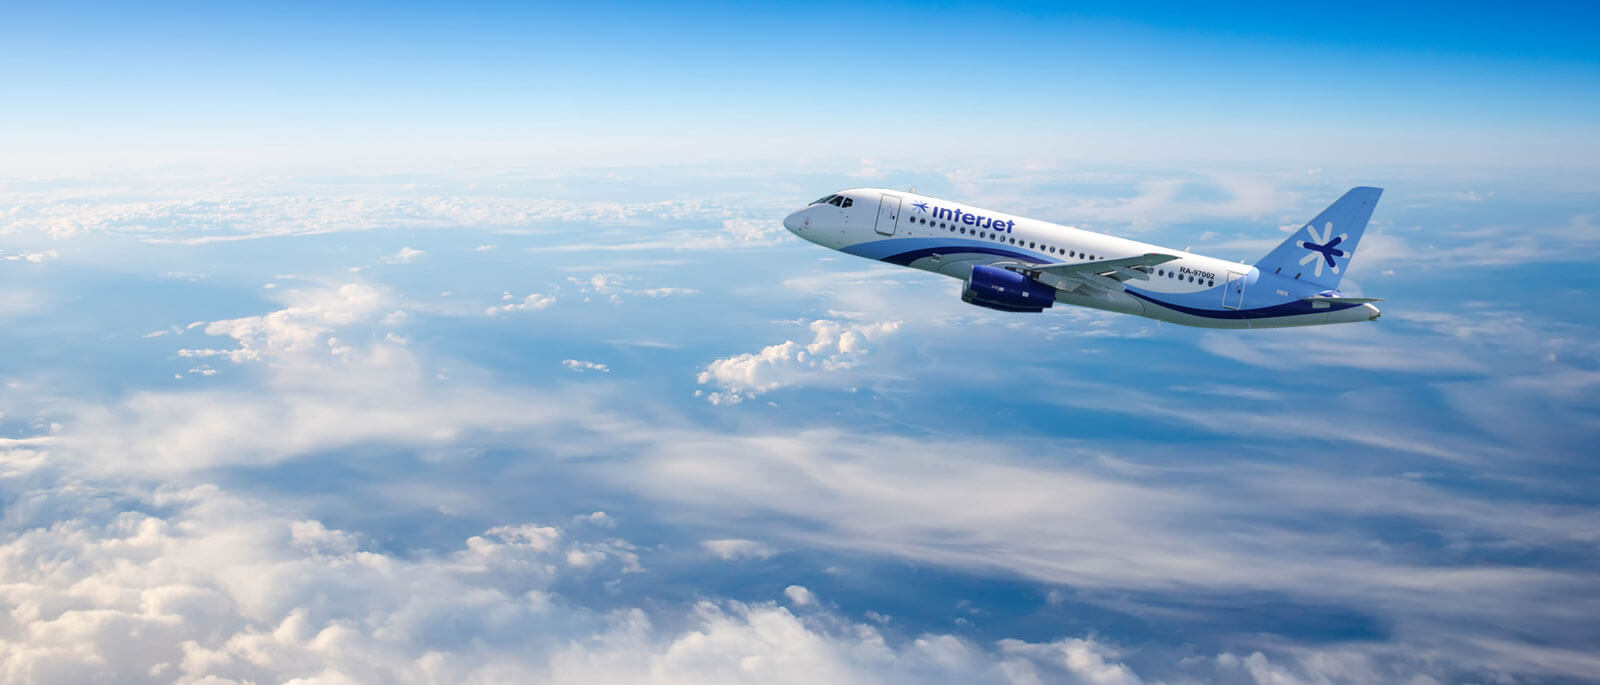 Book Interjet Airlines 4o Flights Best Ticket Deals